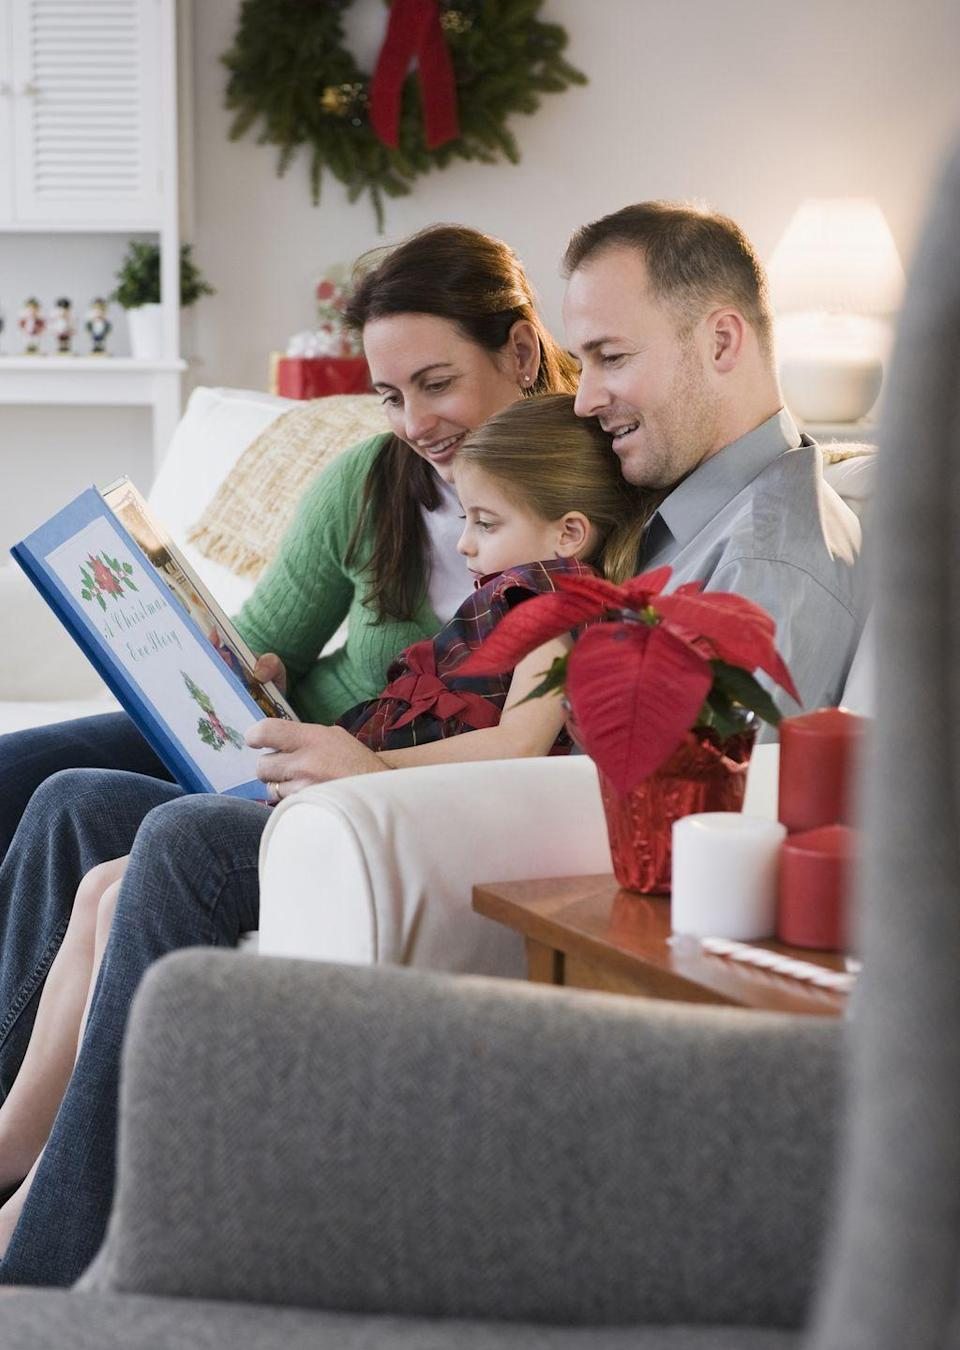 """<p>If you're pretending, it'll probably come across in the final image. """"If you use a <a href=""""https://www.goodhousekeeping.com/holidays/christmas-ideas/g23743657/christmas-books/"""" rel=""""nofollow noopener"""" target=""""_blank"""" data-ylk=""""slk:Christmas book"""" class=""""link rapid-noclick-resp"""">Christmas book</a>, for example, have mom and dad hold the book while the kids are looking at it,"""" says Hyde. """"It works if it's a genuine moment. If you're really reading it — and you say something like, 'Can you find the mouse on this page?' — then the kids will actually enjoy it, and the photo will look more natural.""""</p>"""